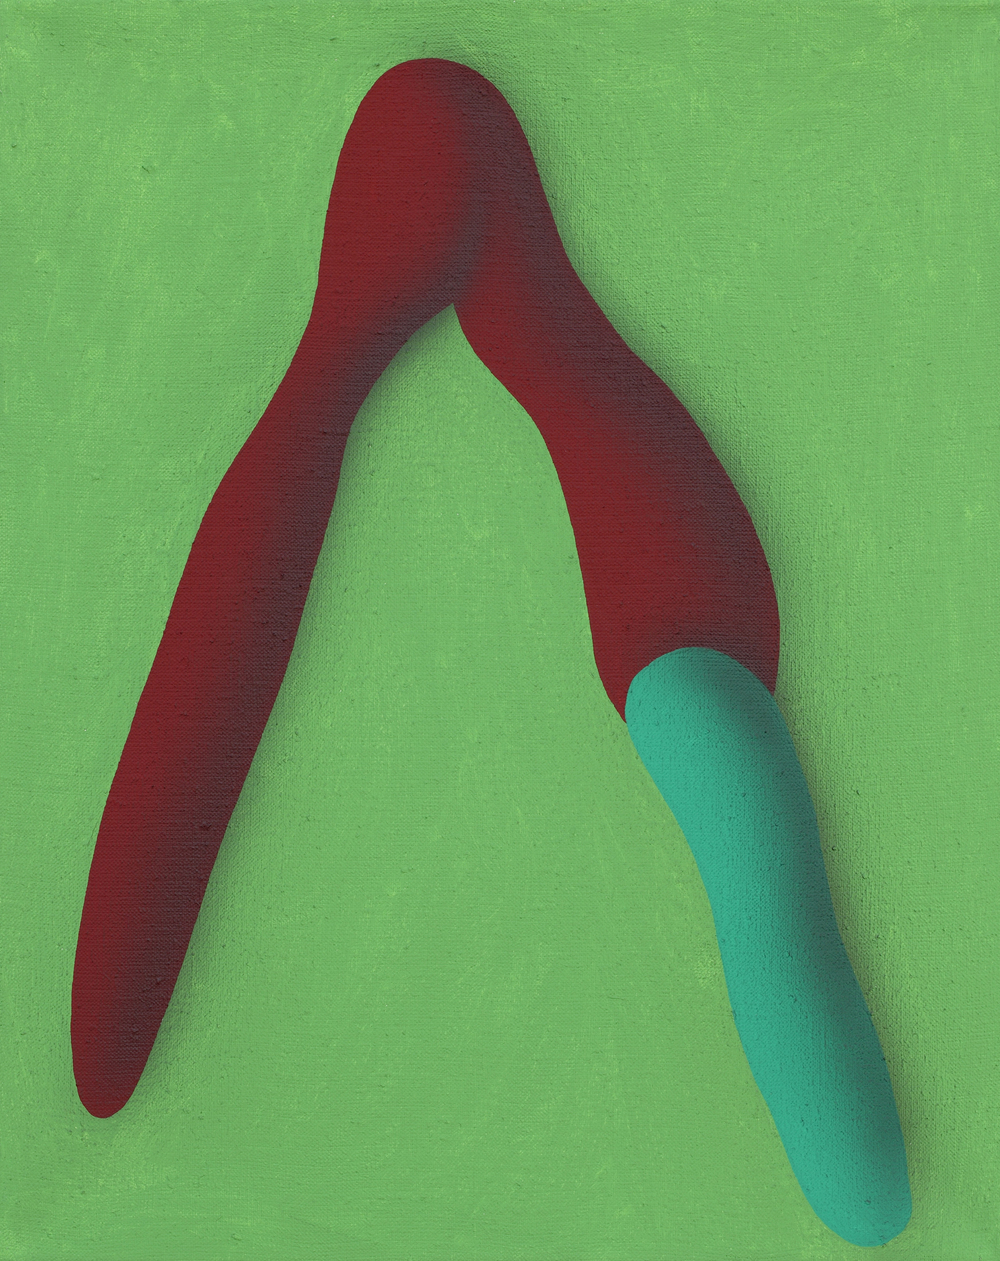 Elementary touching lines II. 2010, acrylic on canvas, 50 x 40 cm